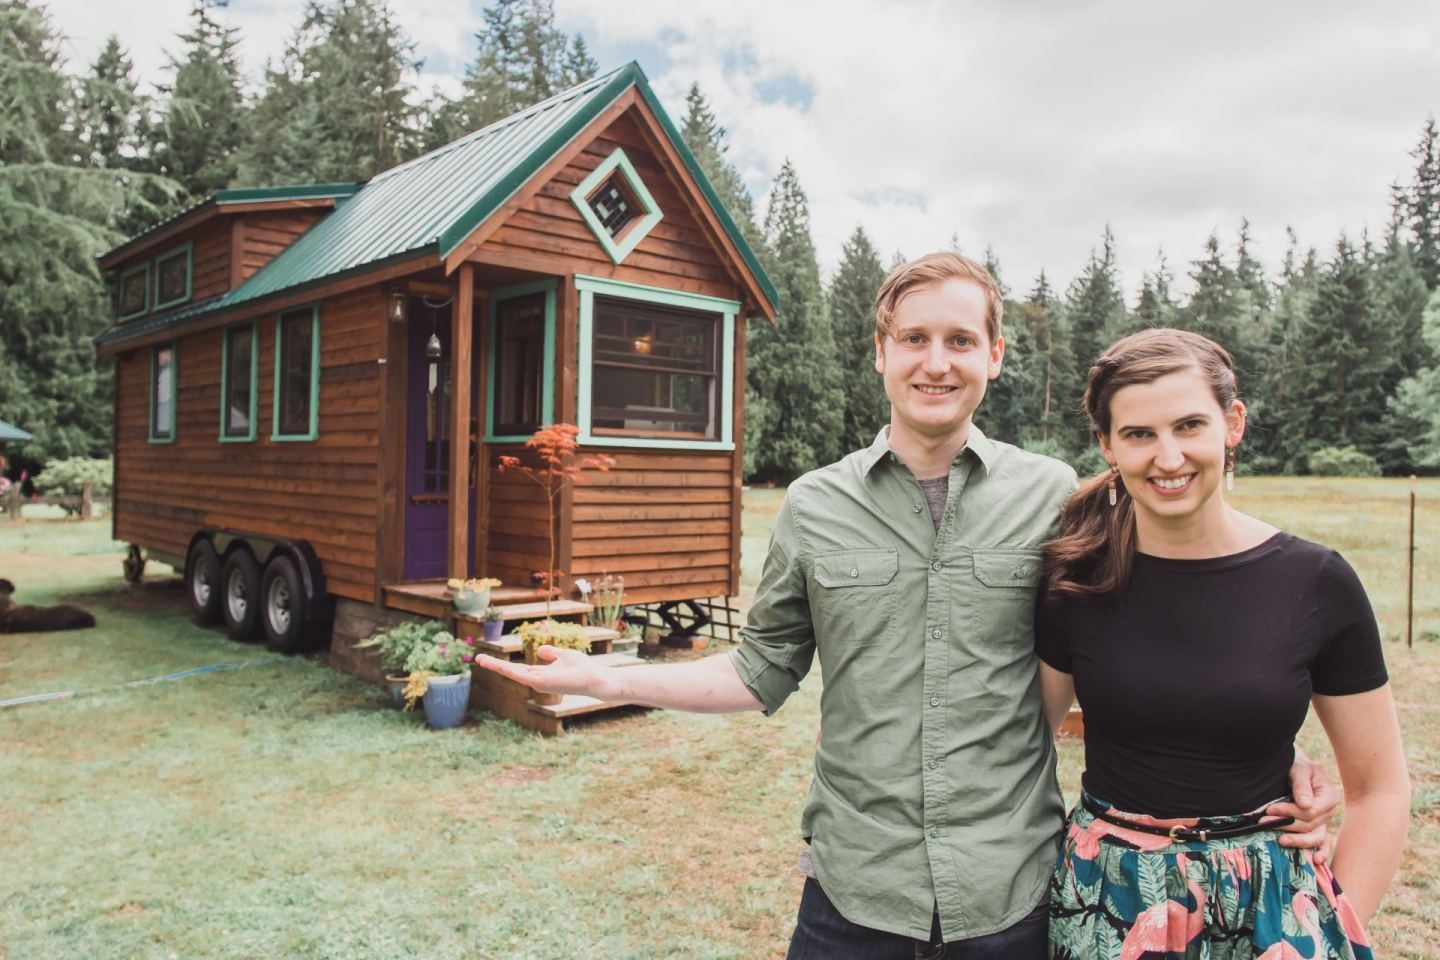 Craftsman Tiny House Built by Artsy Couple to Escape Rent